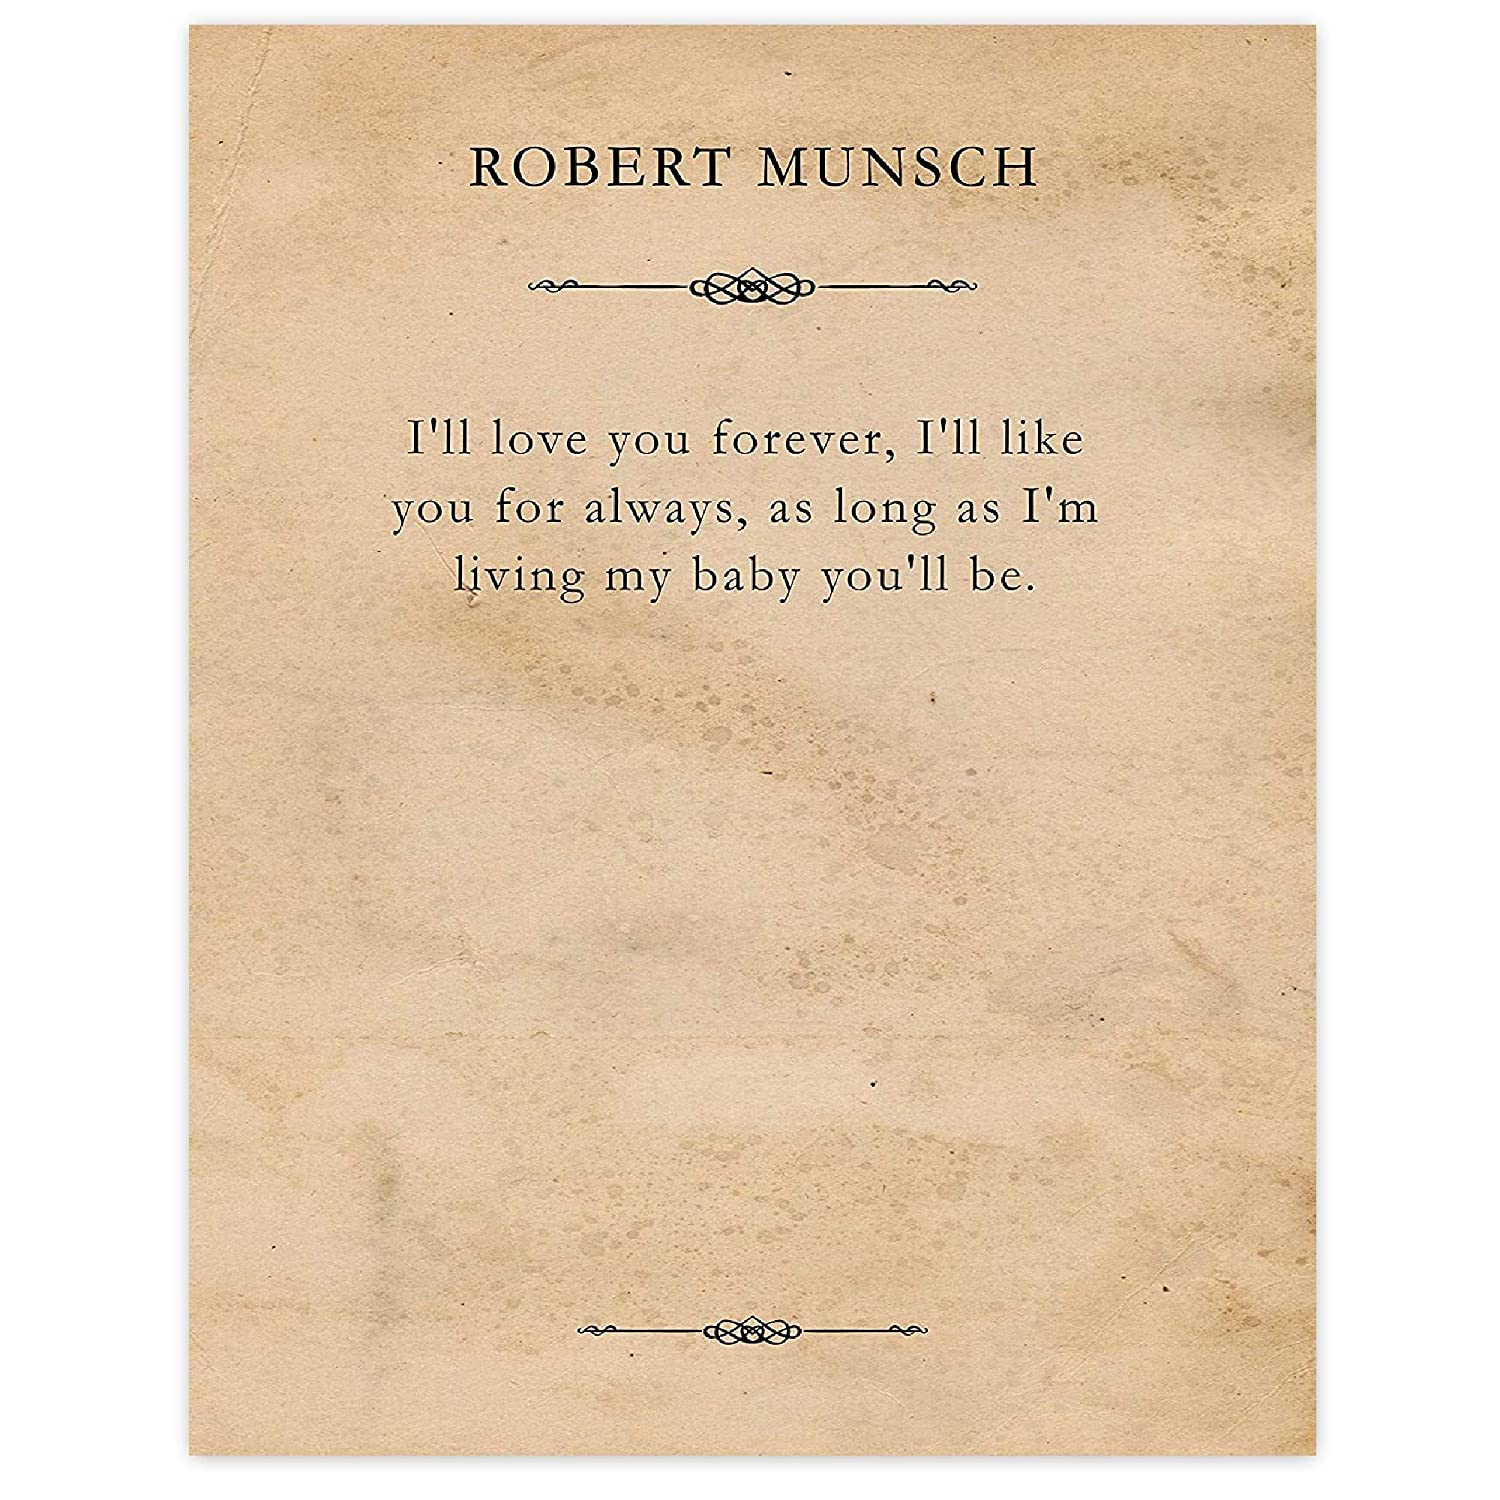 Robert Munsch, I'll Love You Forever, Quote Poster Prints, Set of 1 (11x14) Unframed Typography Book Page Picture, Great Wall Art Decor Gifts Under 15 for Home, Office, Student, Teacher, Literary Fan